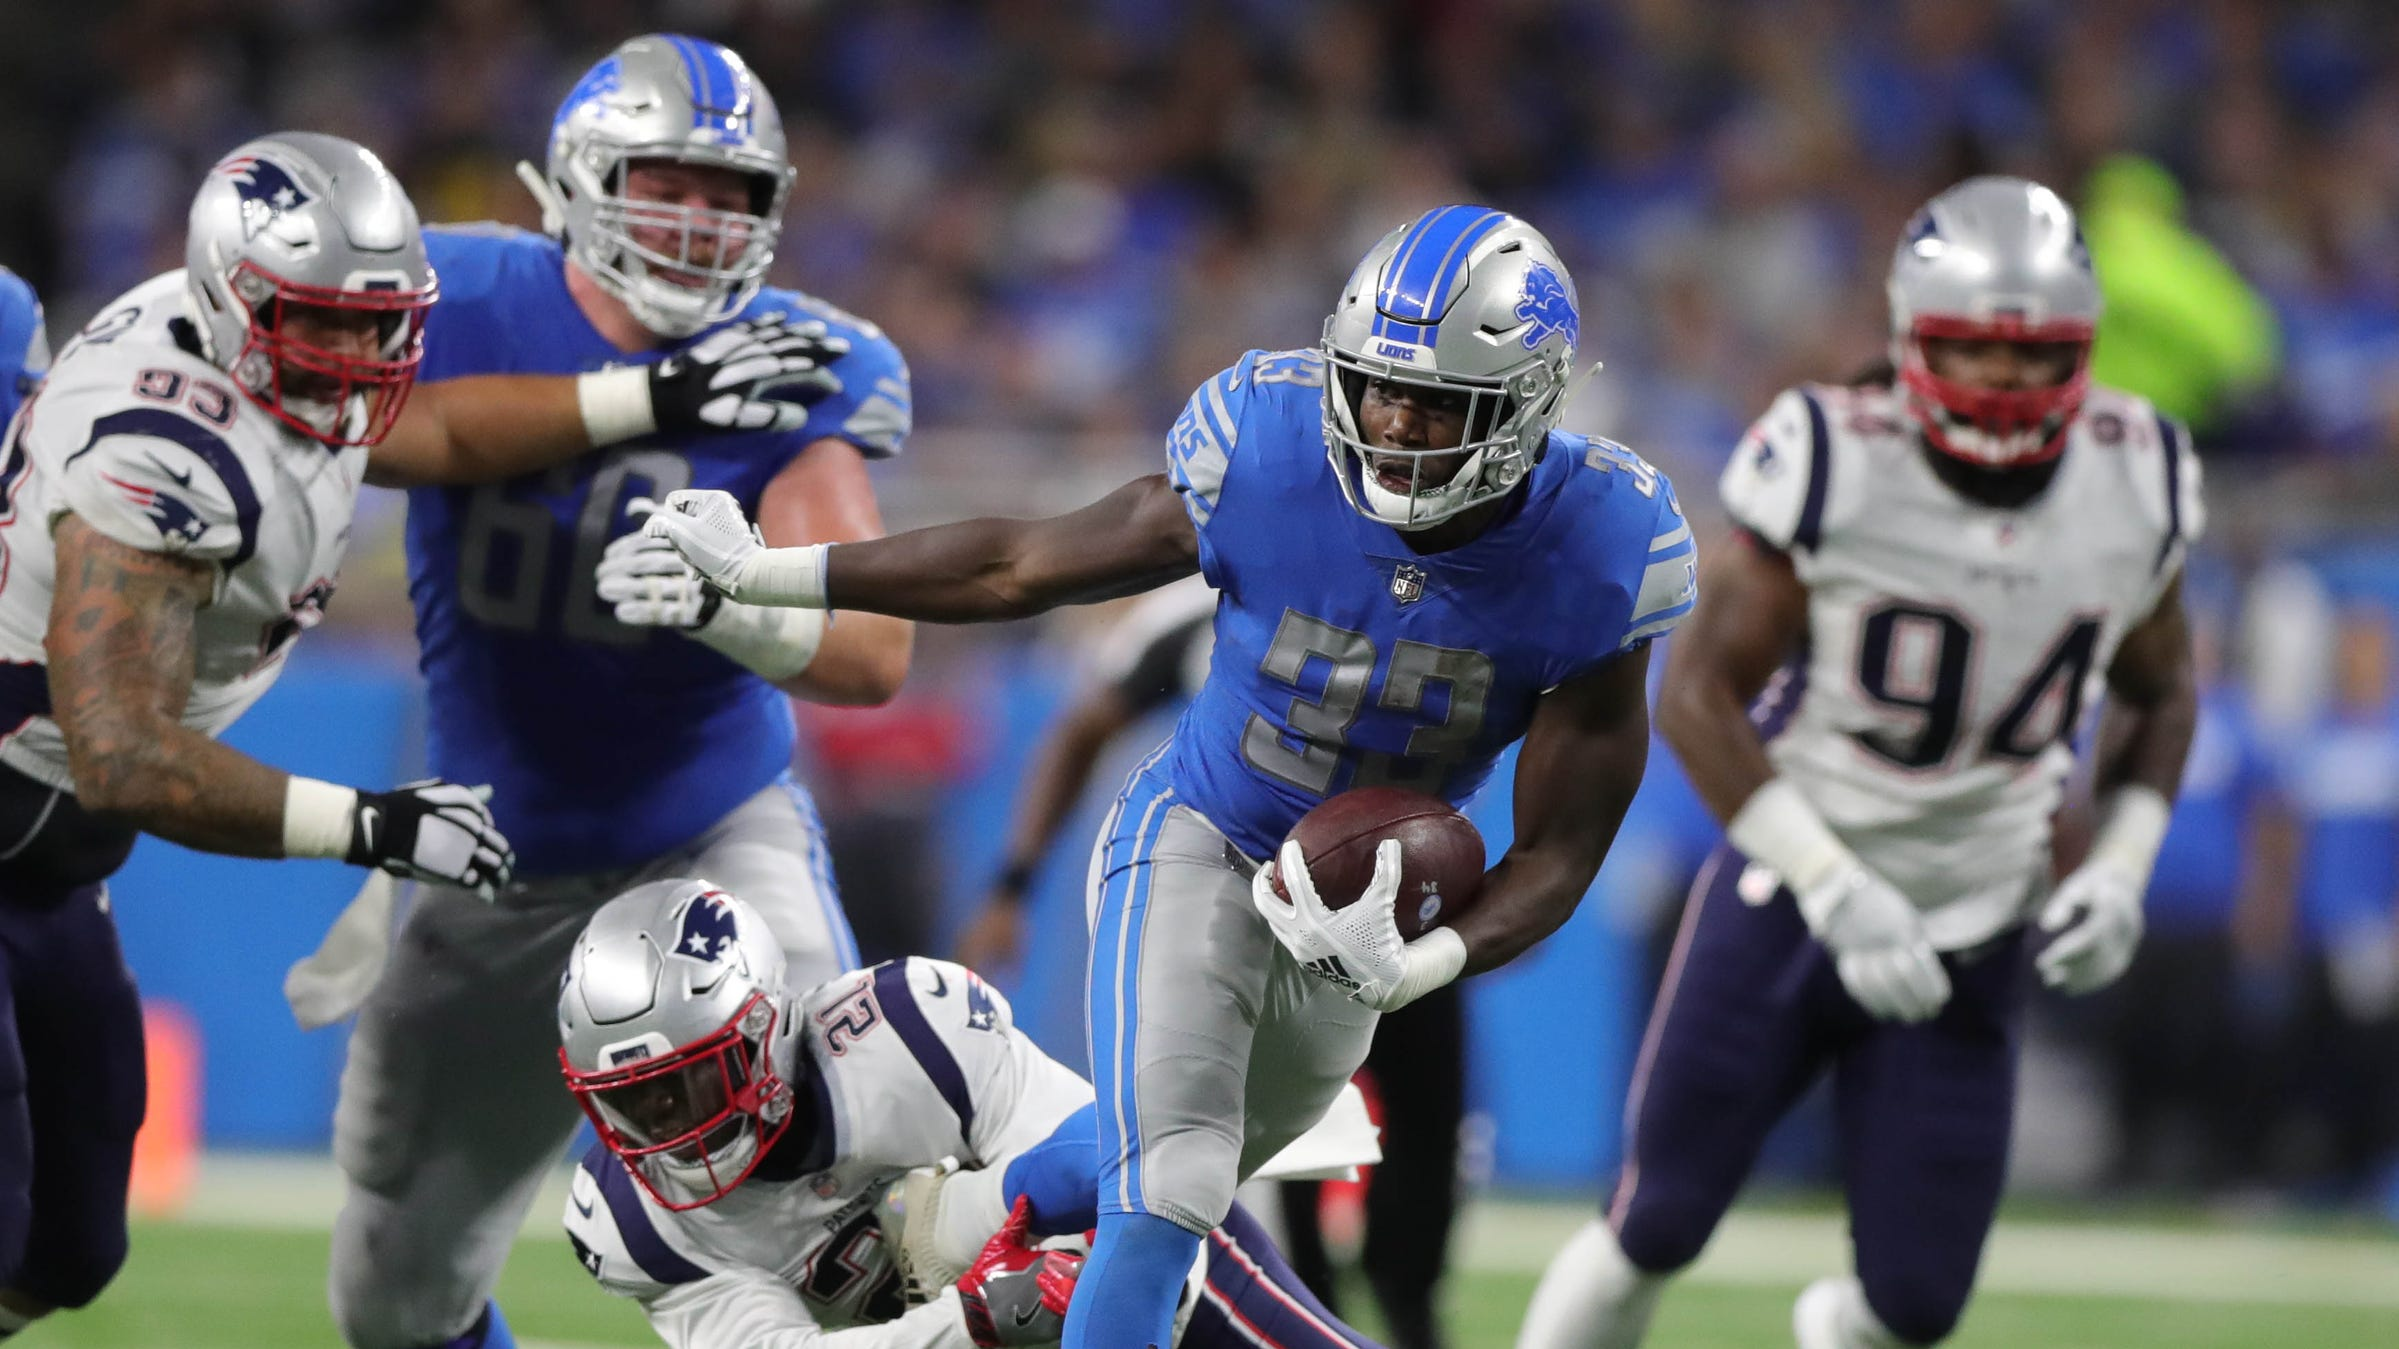 Kerryon Johnson ends Detroit Lions 100-yard rusher drought at 70 games